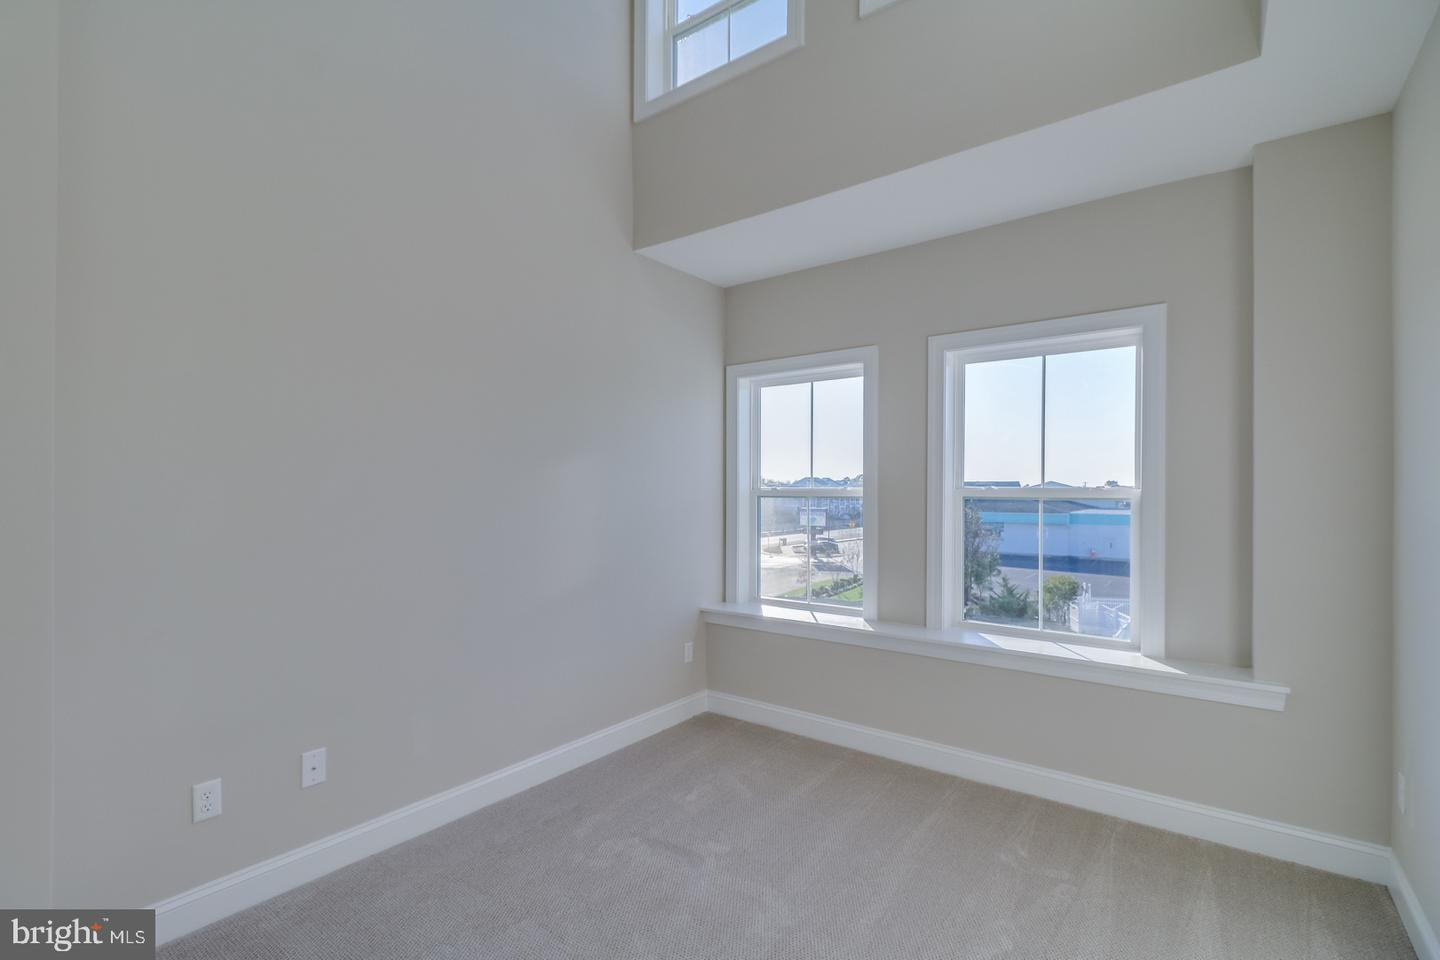 DESU168812-304392288570-2020-11-12-09-20-52 39008 Beacon Rd #2 | Fenwick Island, DE Real Estate For Sale | MLS# Desu168812  - Ocean Atlantic